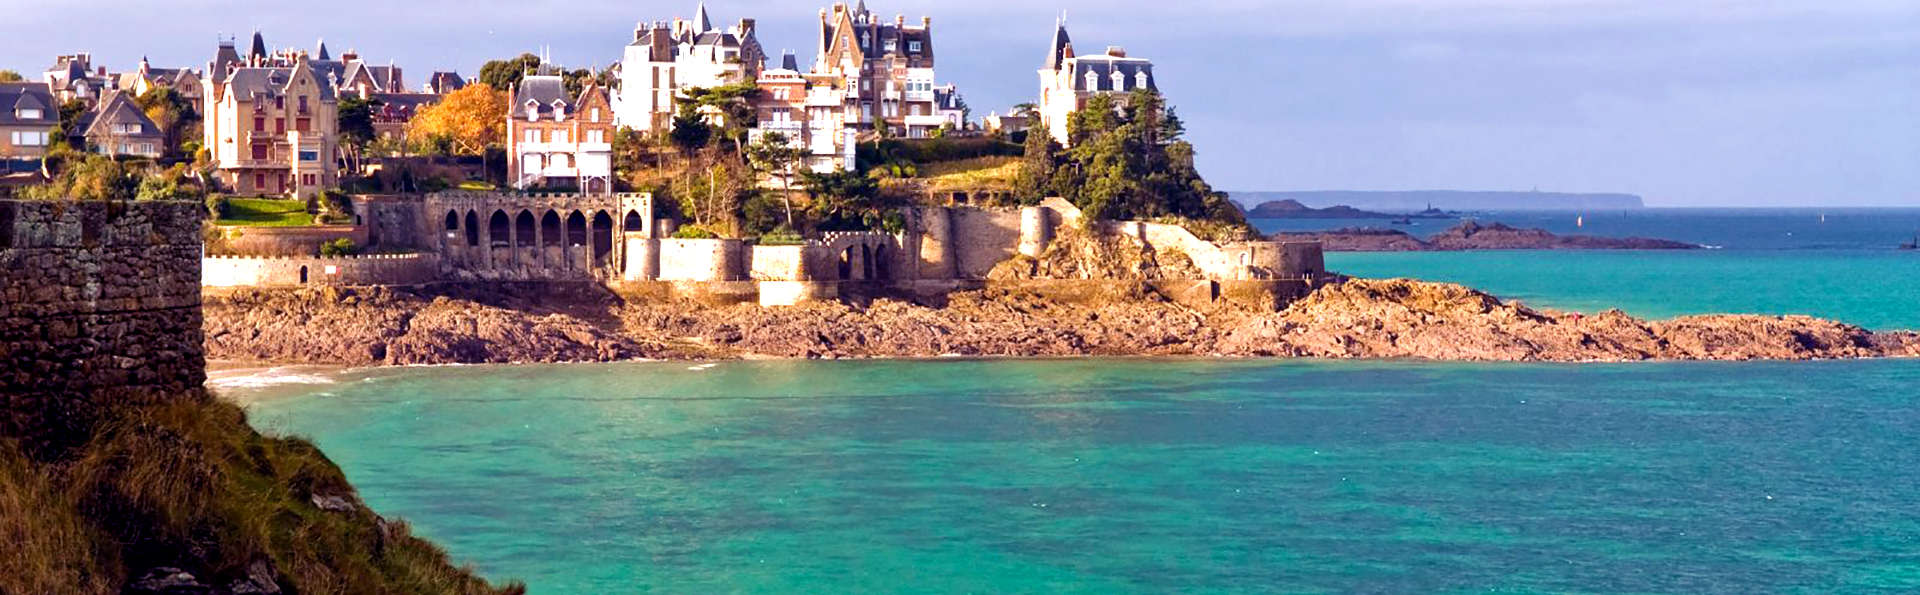 Hotel Dinard Balmoral - Edit_Destination.jpg